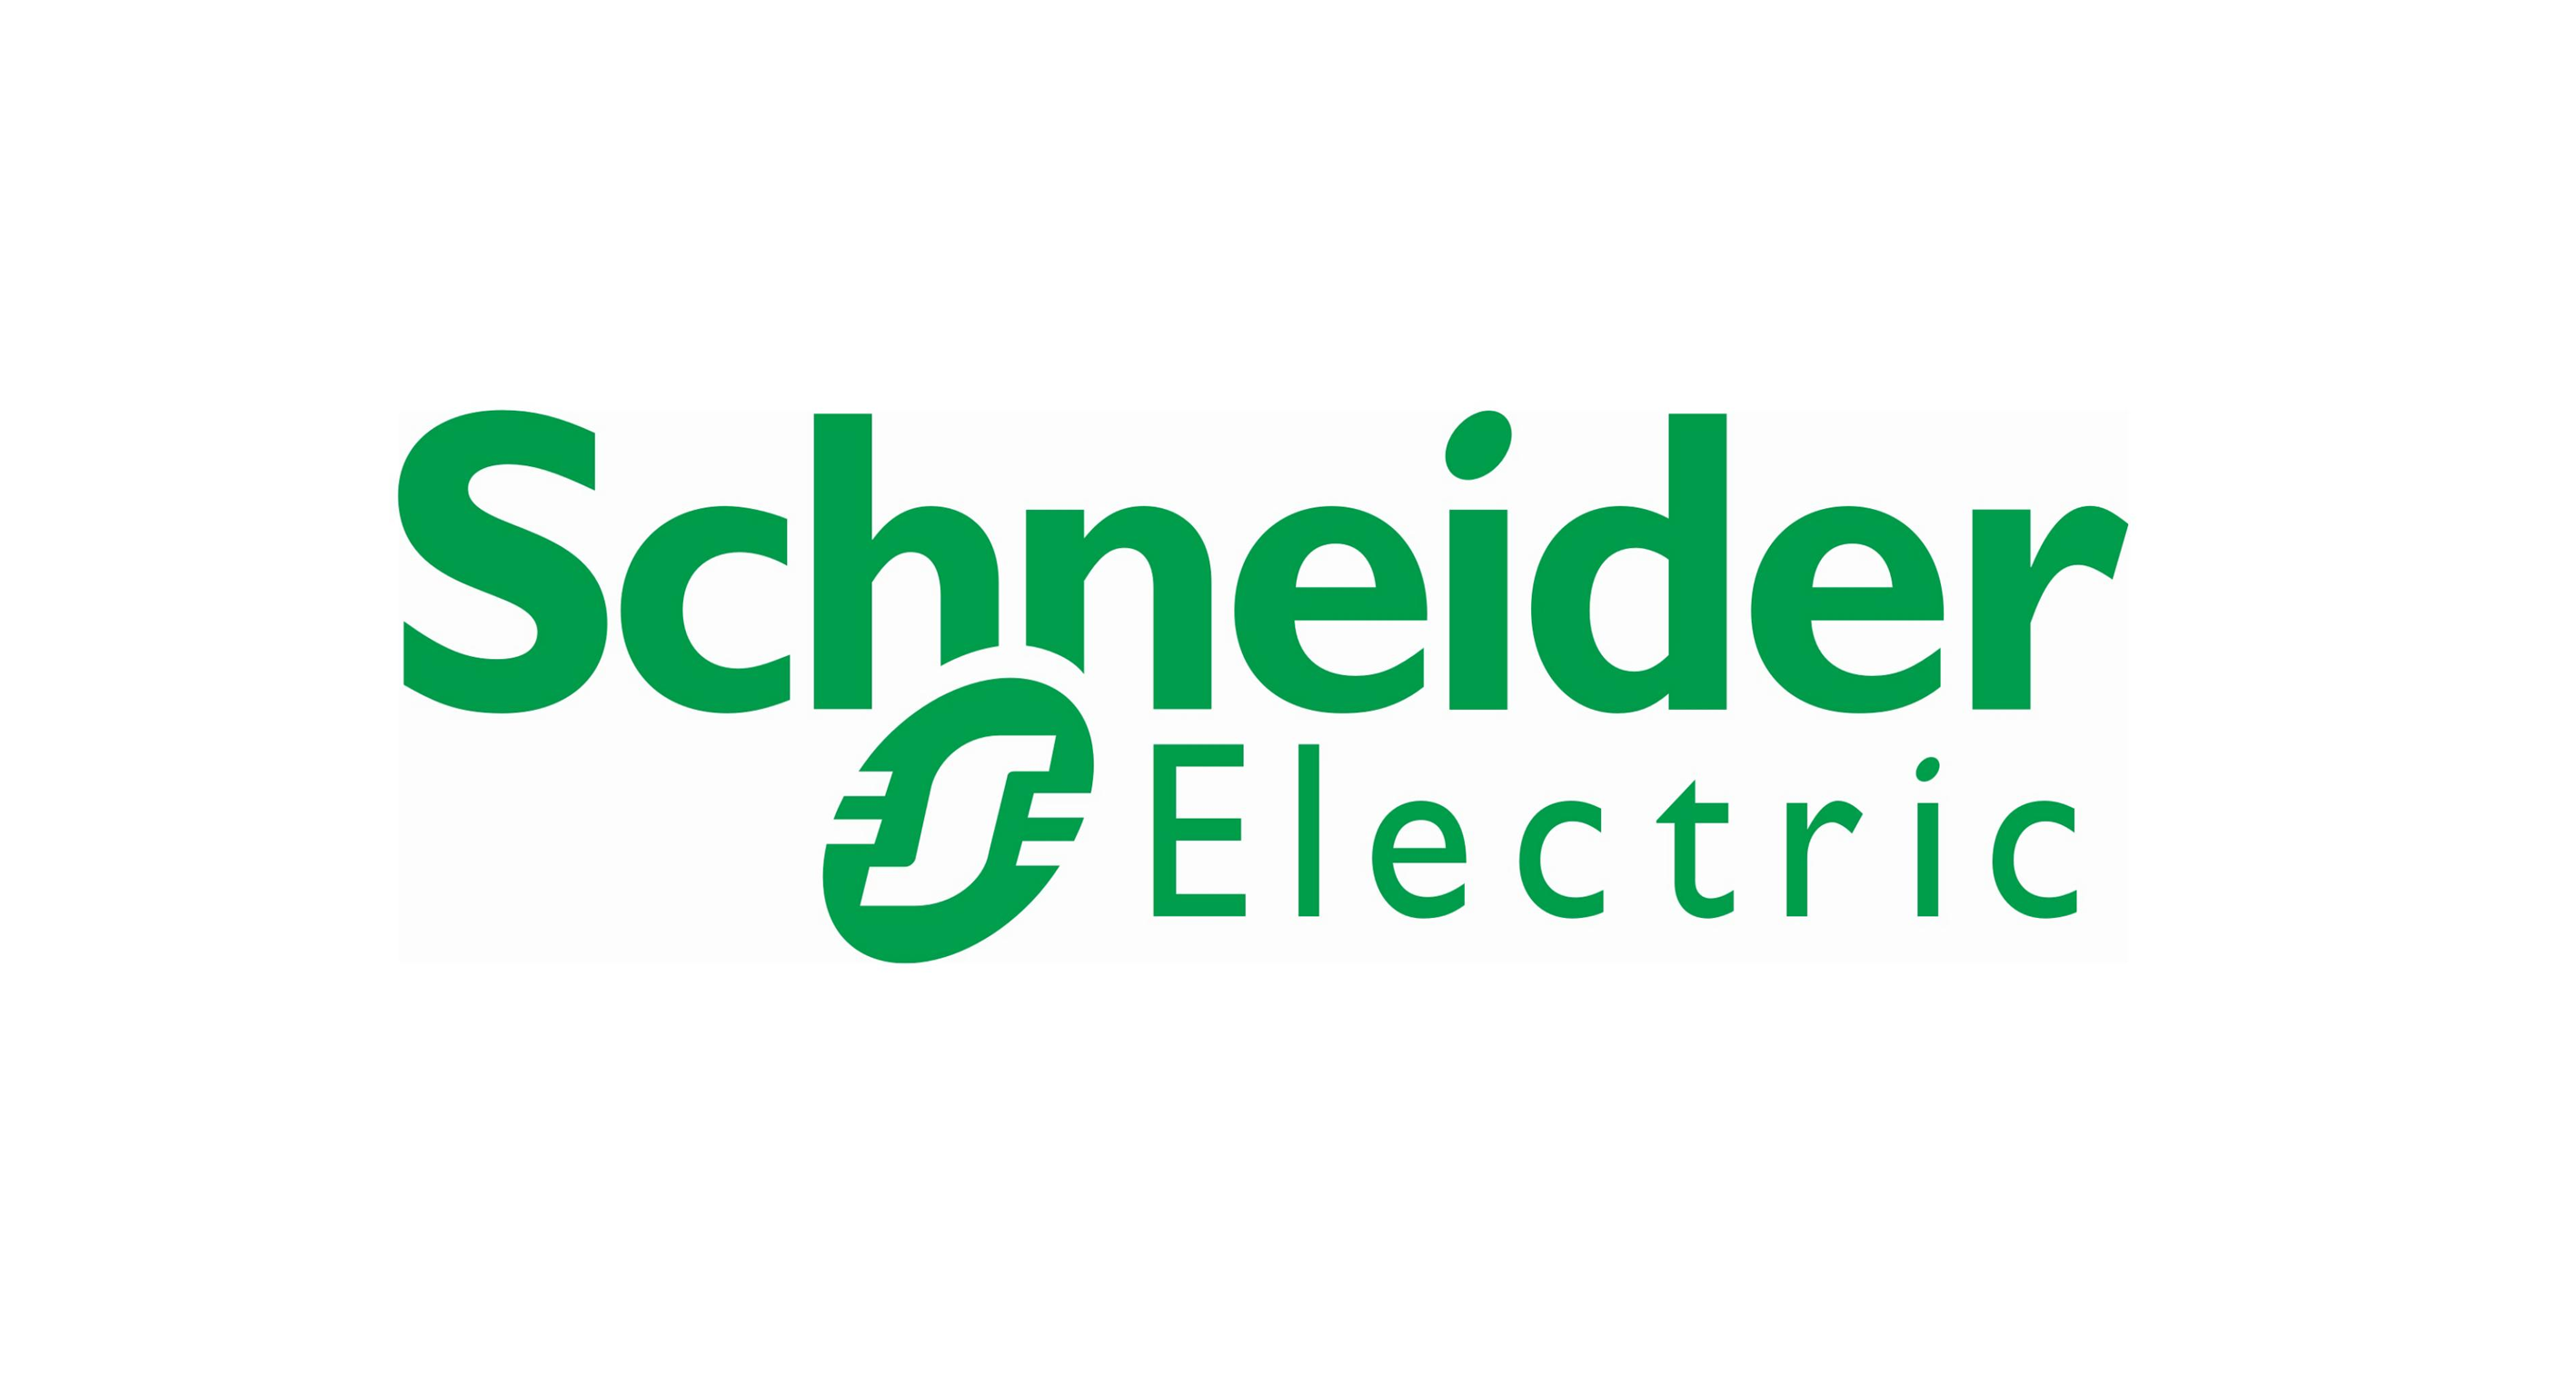 schneider electric makes industry simpler and more